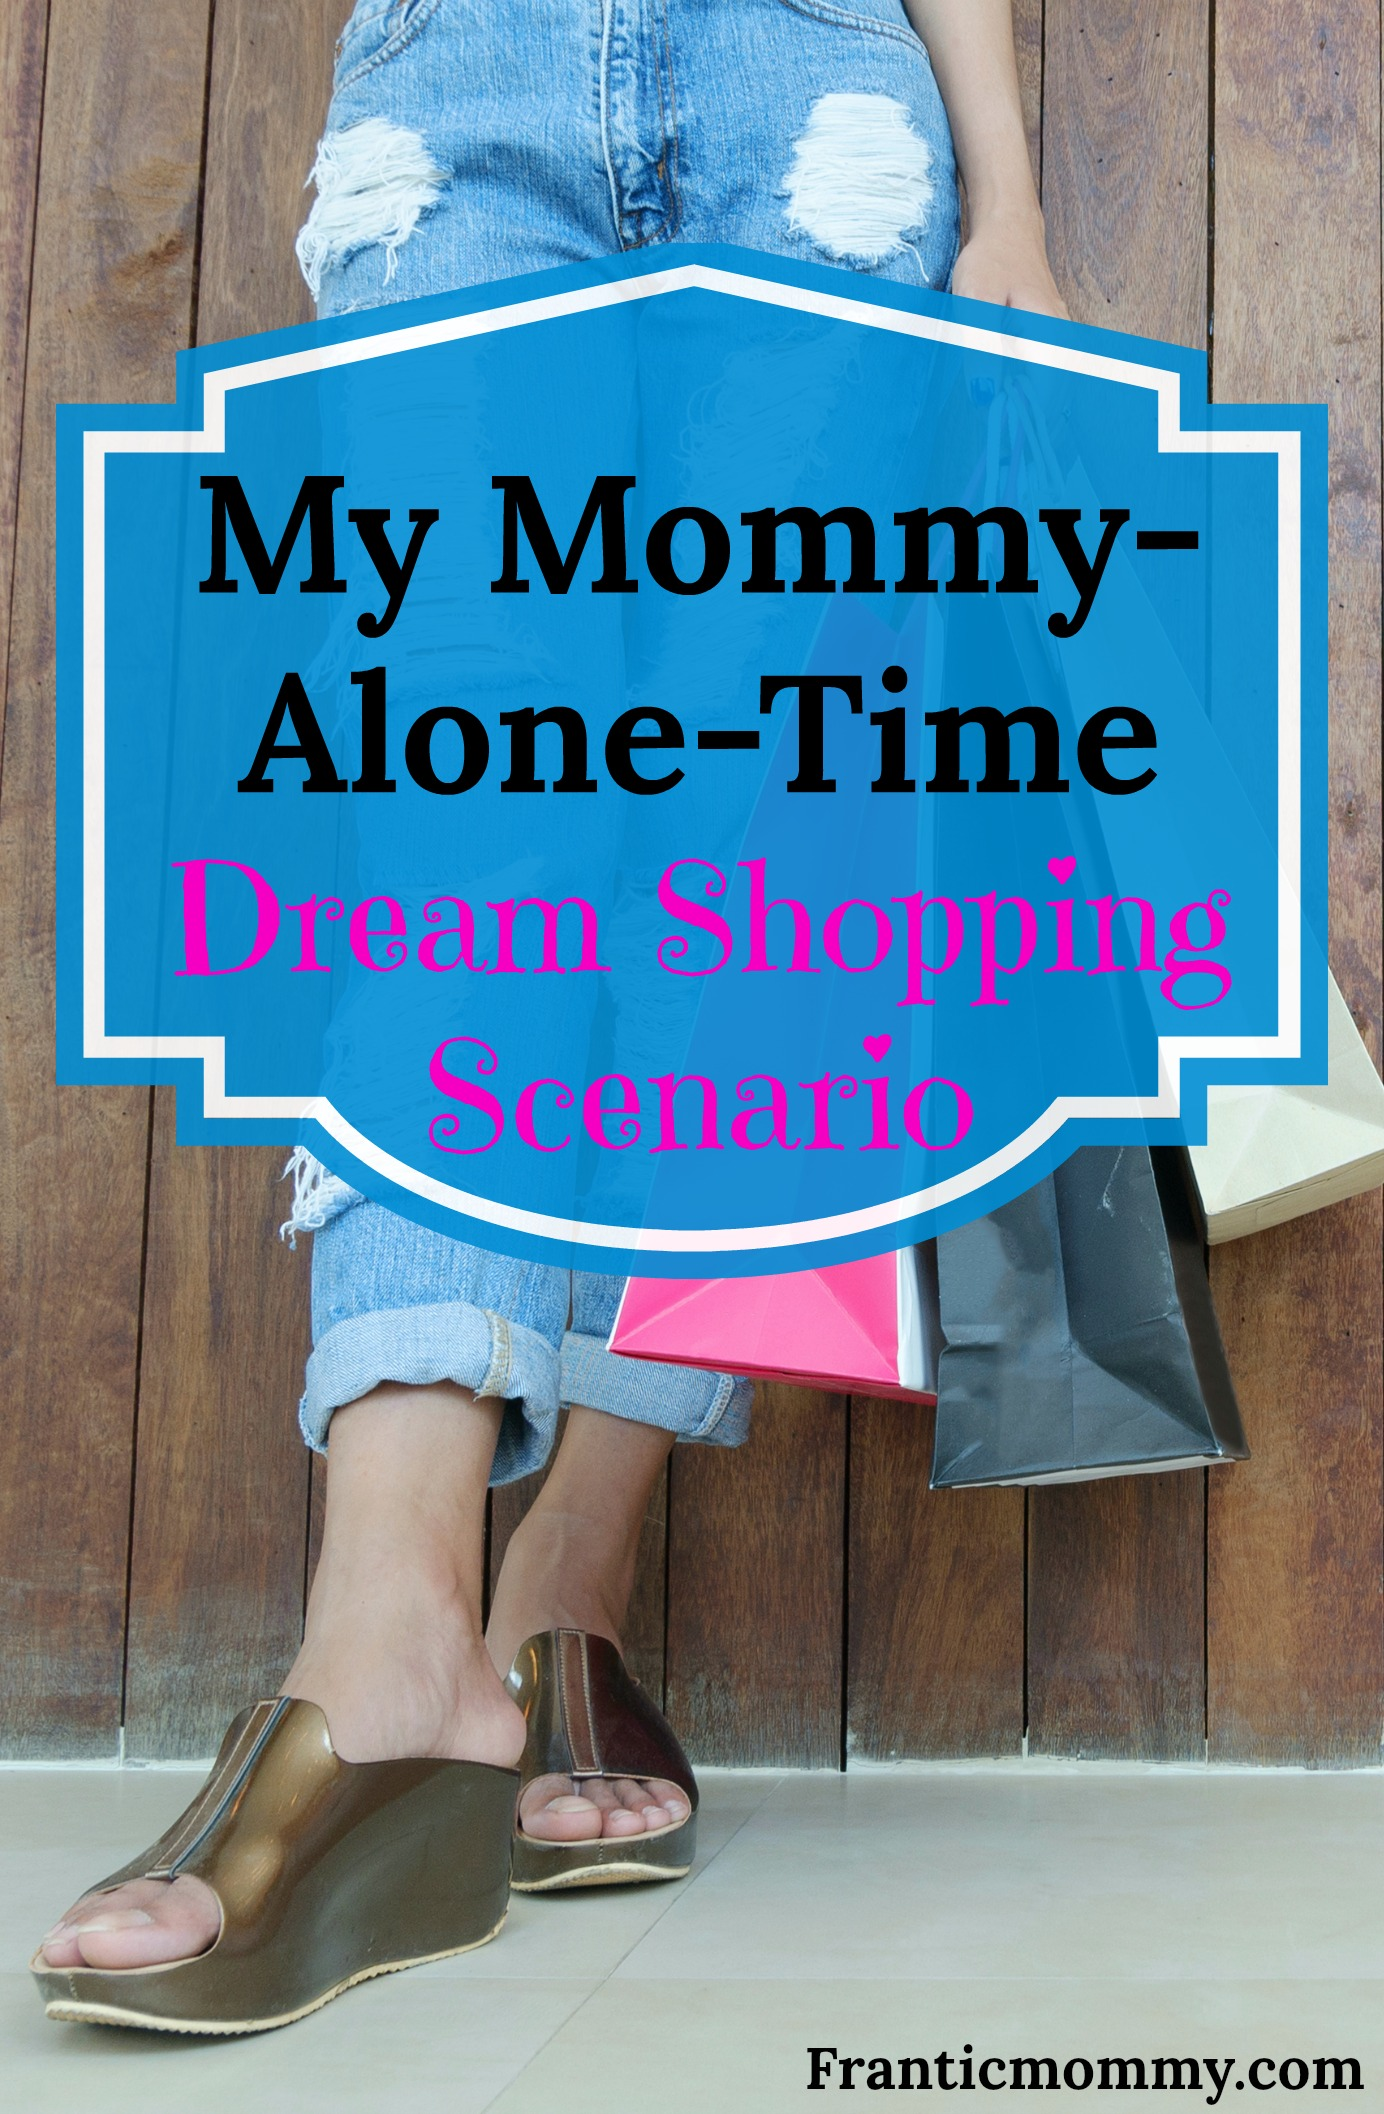 My Mom-Alone-Time Dream Shopping Scenario